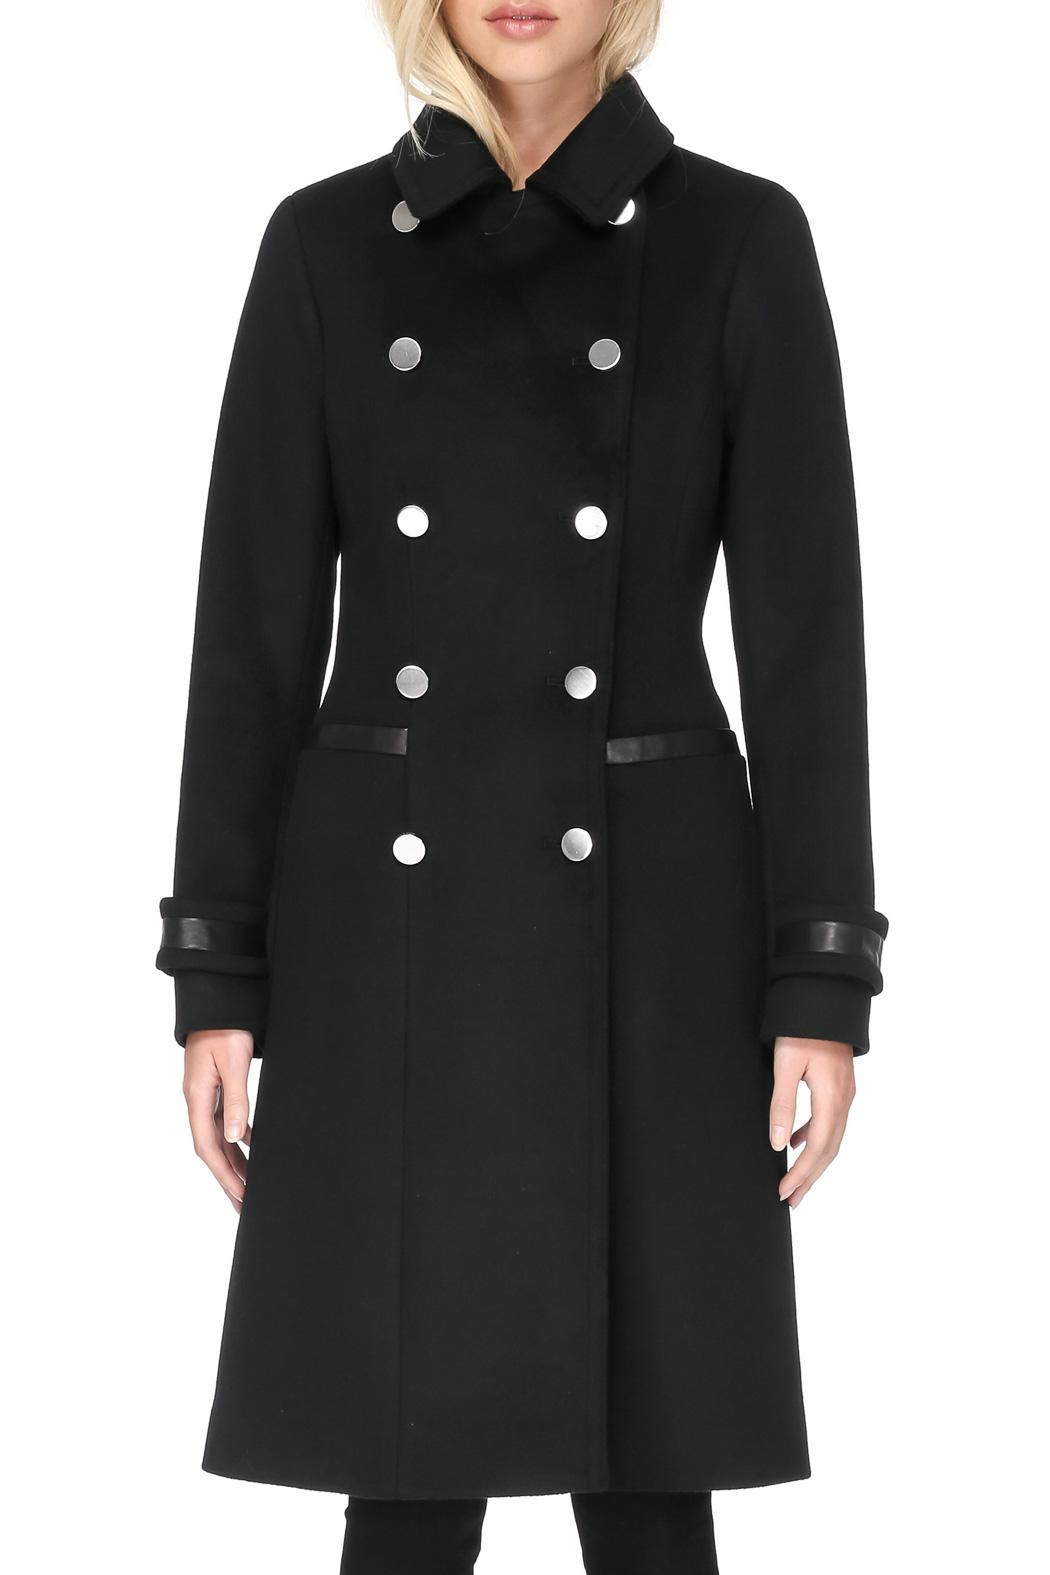 Soia & Kyo Julianna Wool Coat - Side Cropped Image